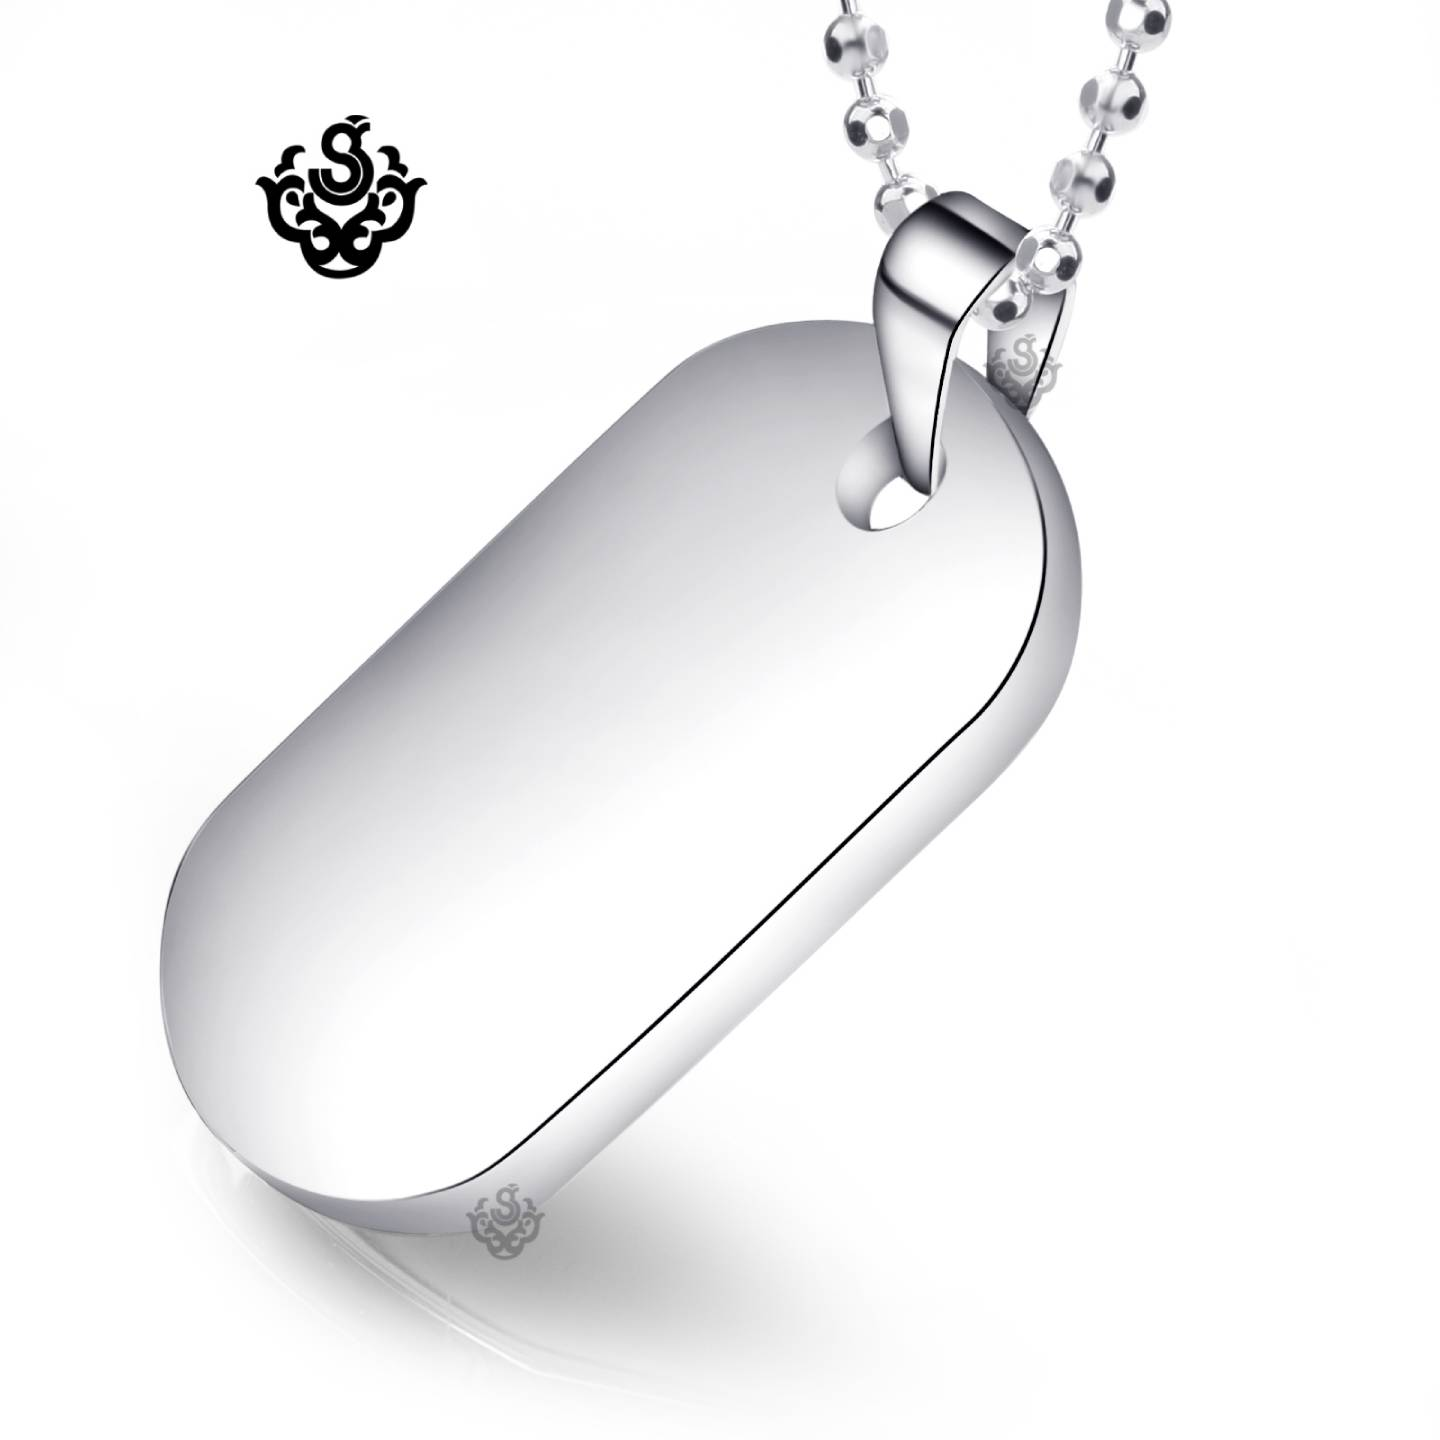 New Stainless Steel Zodiac Dog Tag Pendant Men S Women S: Silver Dog Tag Plain Pendant Stainless Steel Necklace